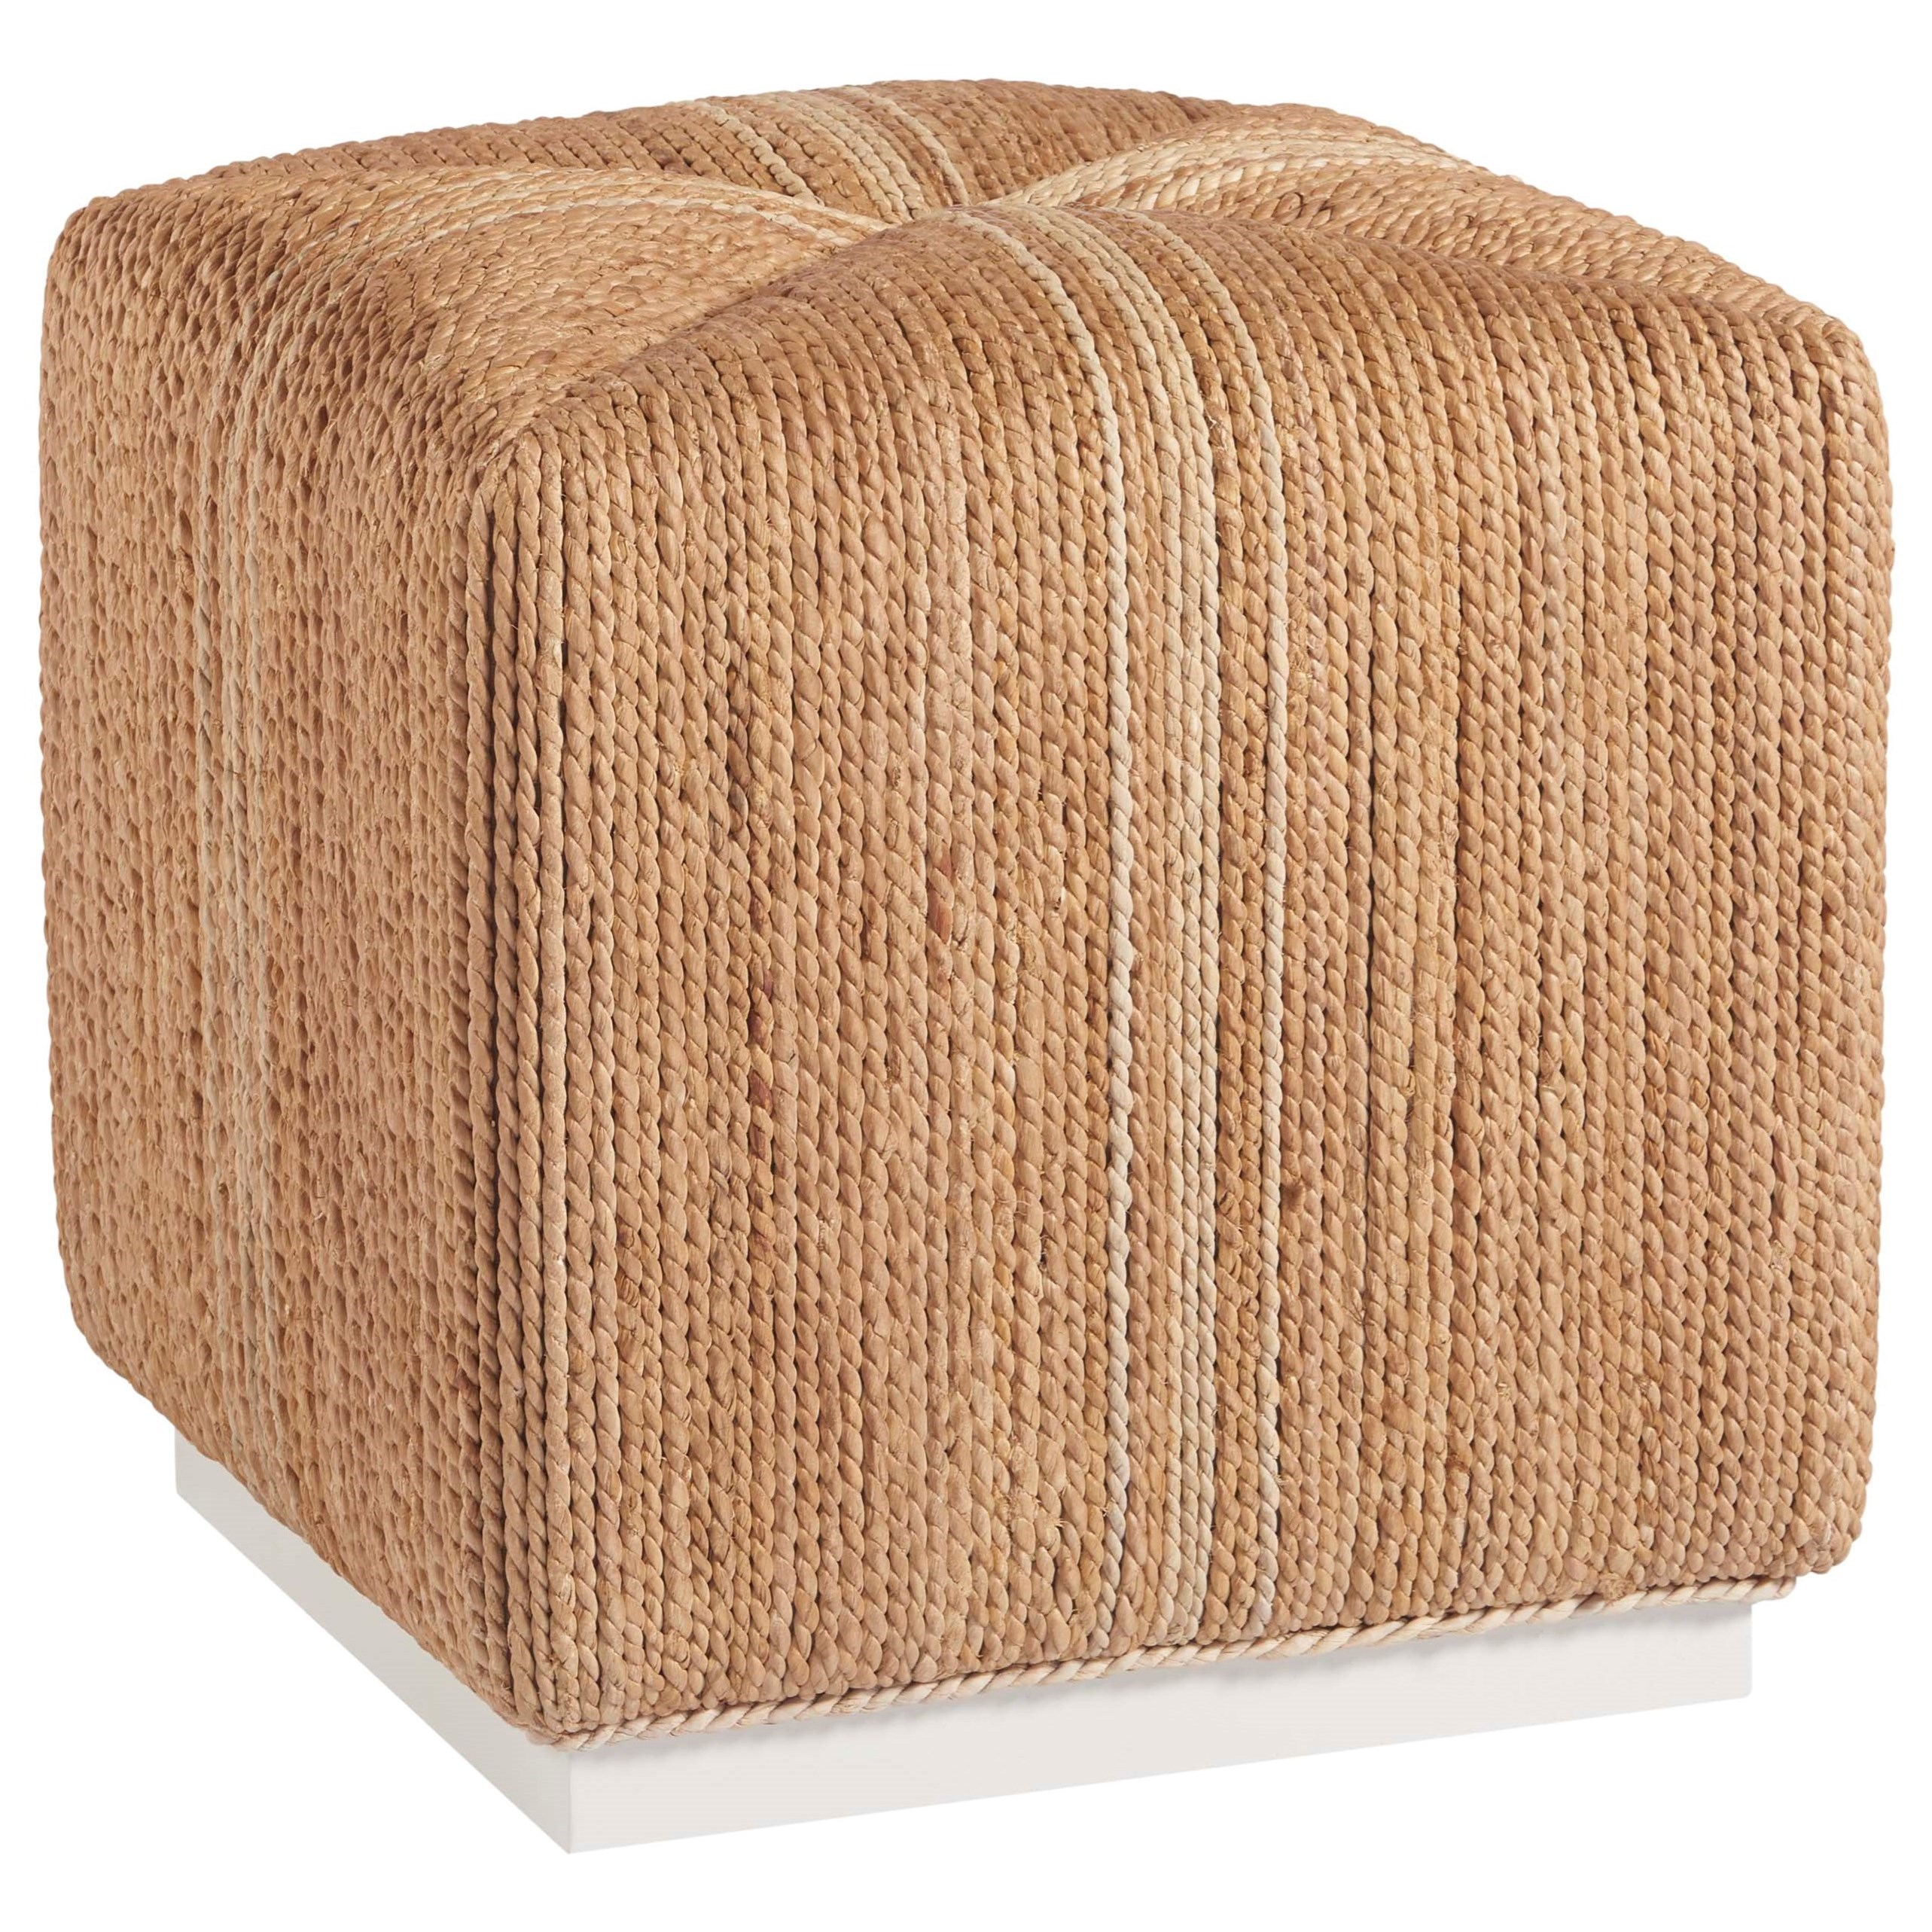 Coastal Living Home - Escape Abaca Cube by Universal at Baer's Furniture